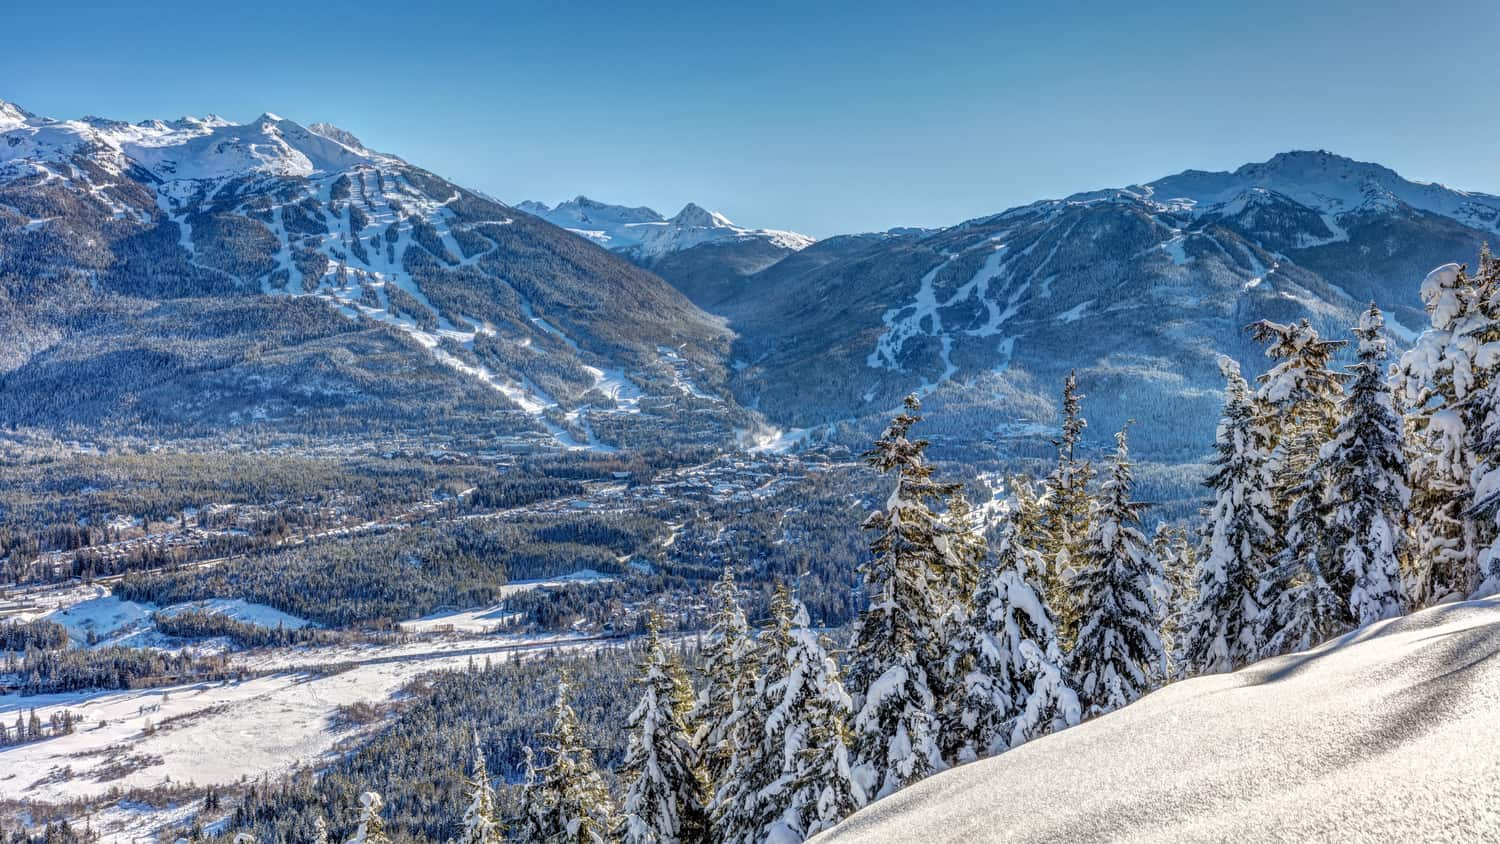 Gebirge im Winter, Blackcomb Mountains, Wistler, BC, Stunning Location